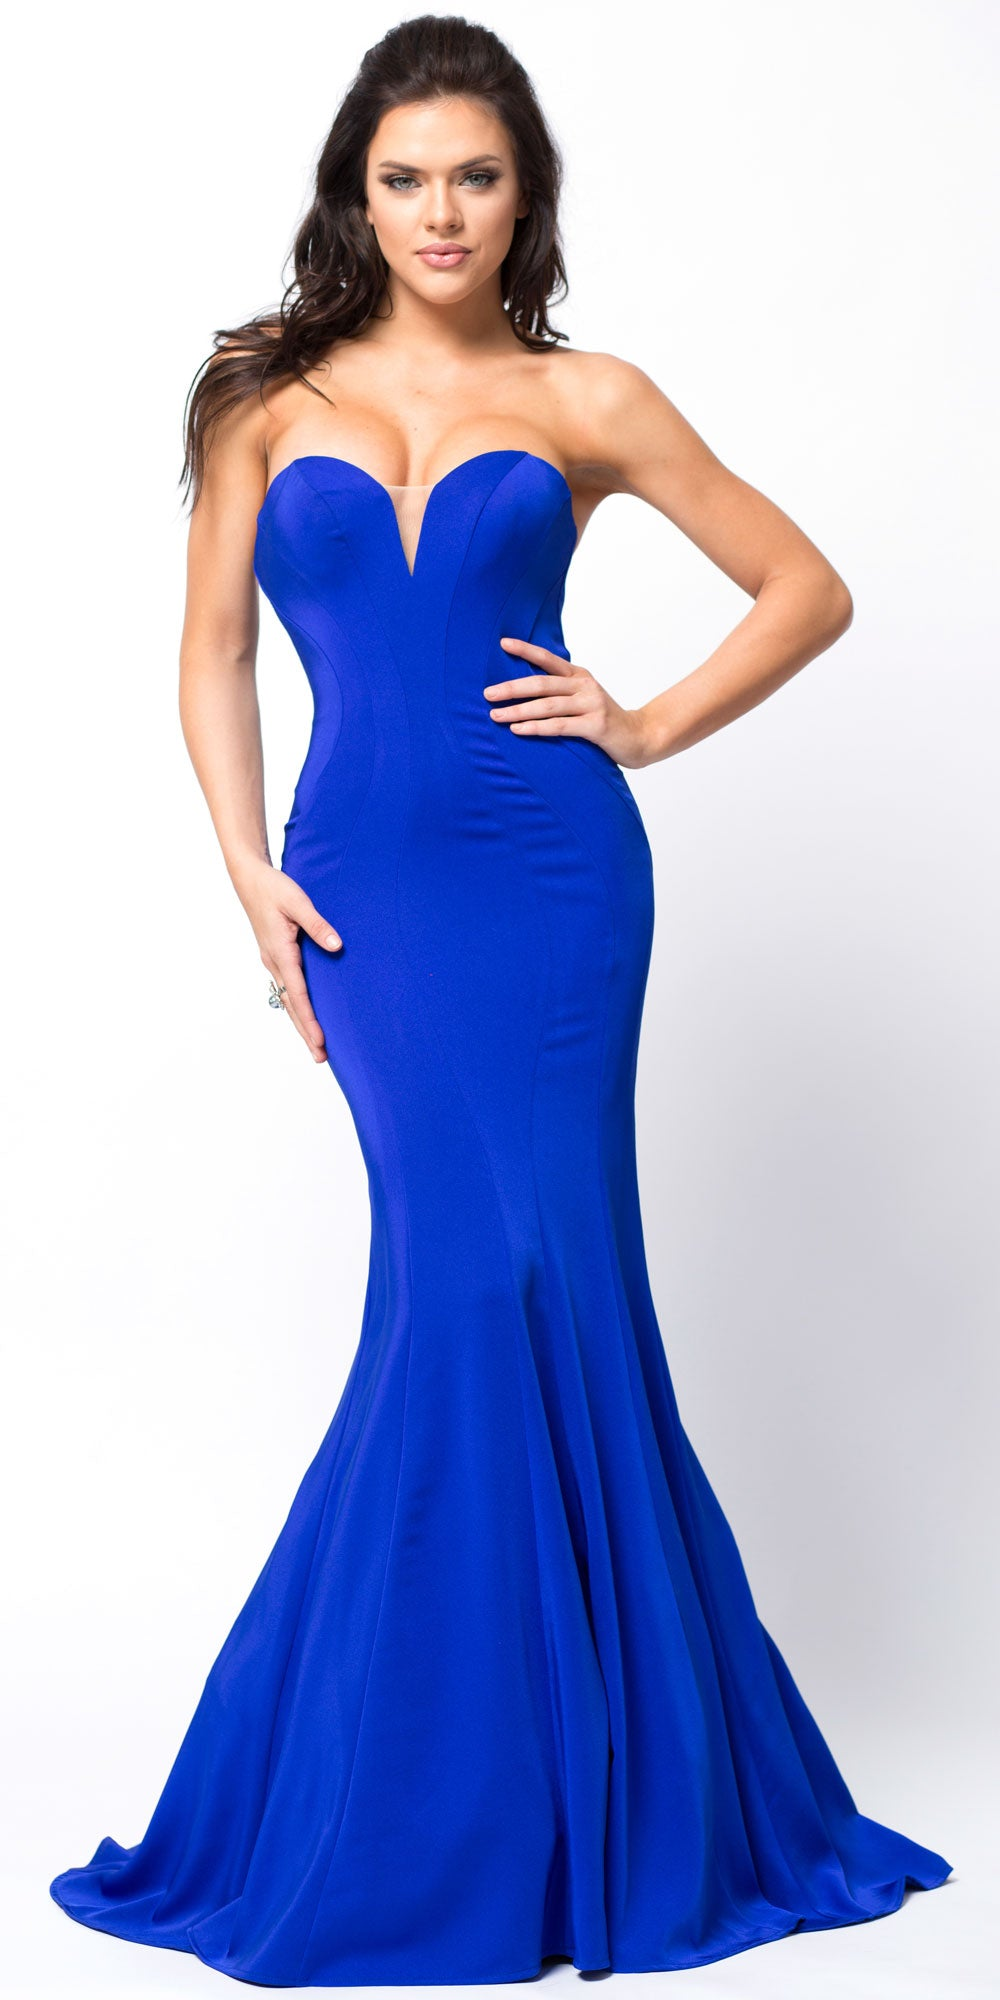 Main image of Classic Strapless Mermaid Cut Fit-n-flare Long Prom Dress